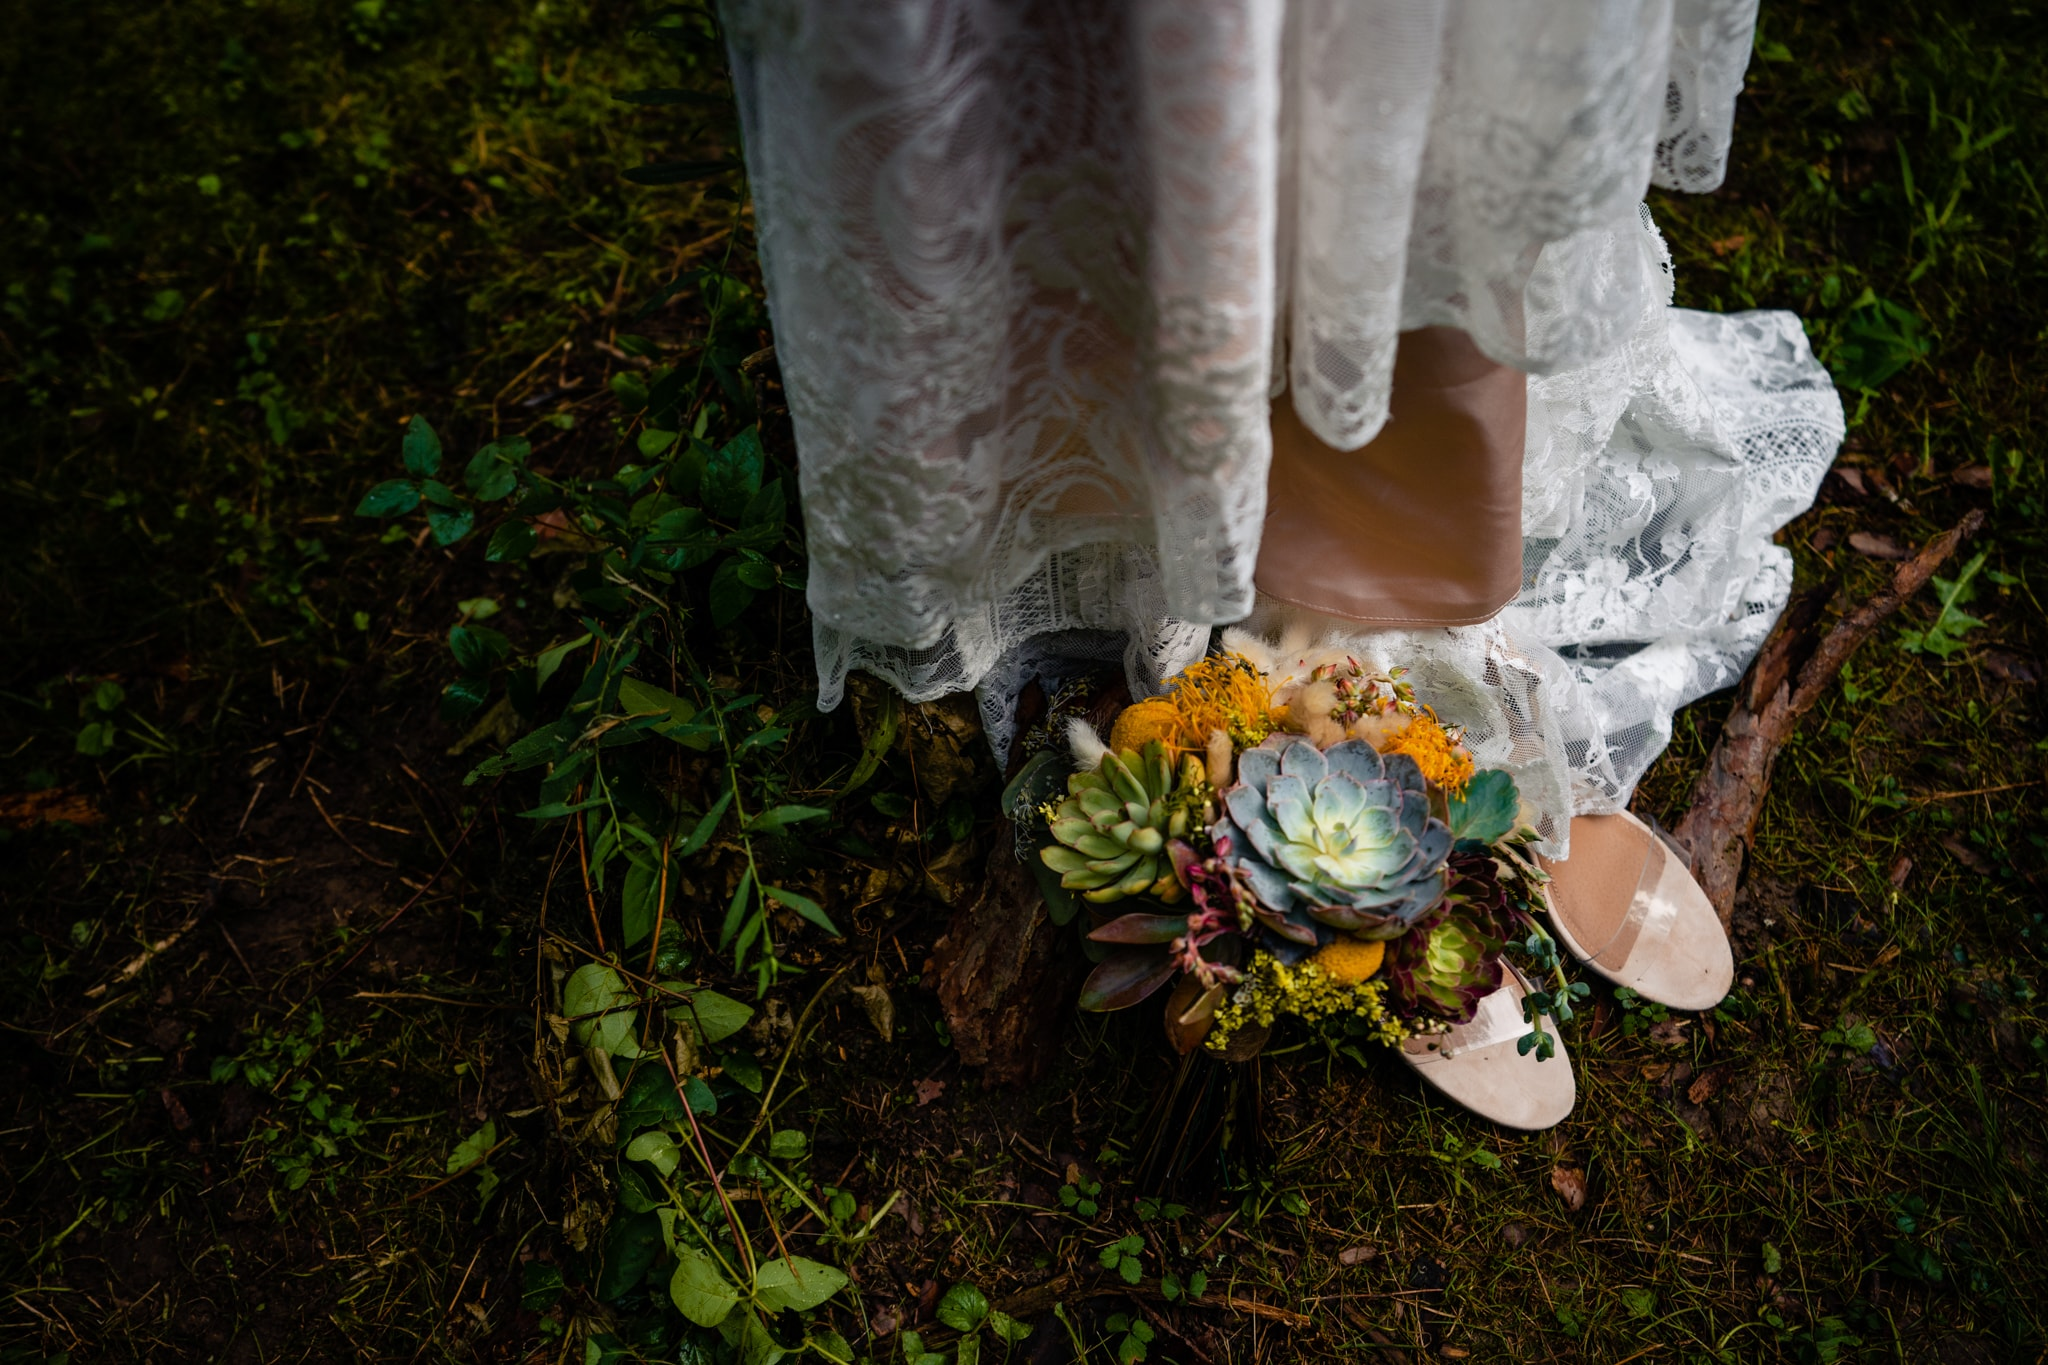 Bride's wedding dress and shoes rest in the woods outside Cincinnati, Ohio.